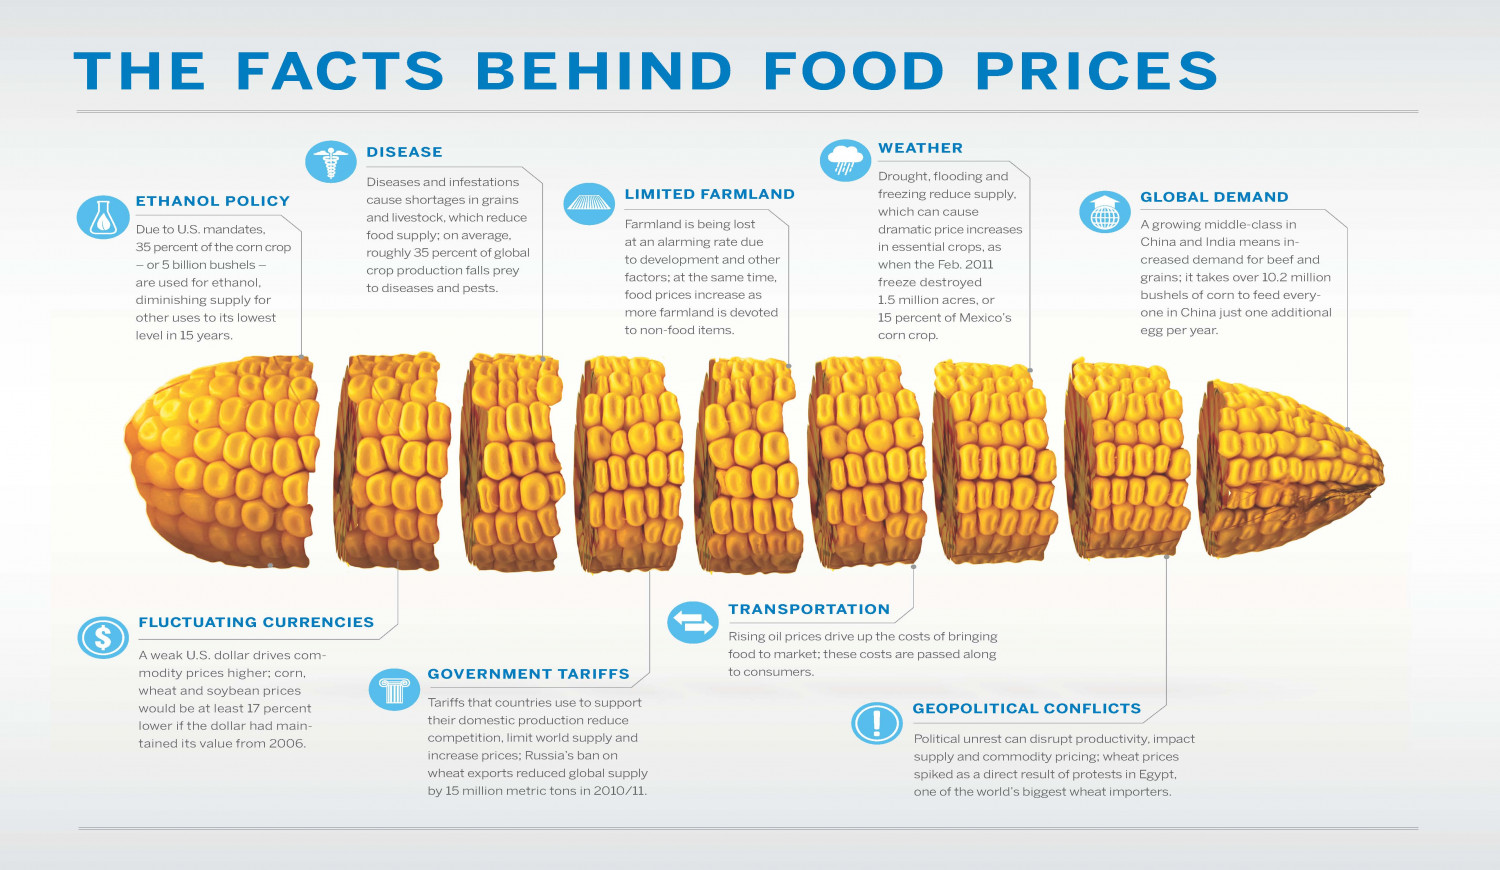 The Facts Behind Food Prices Infographic